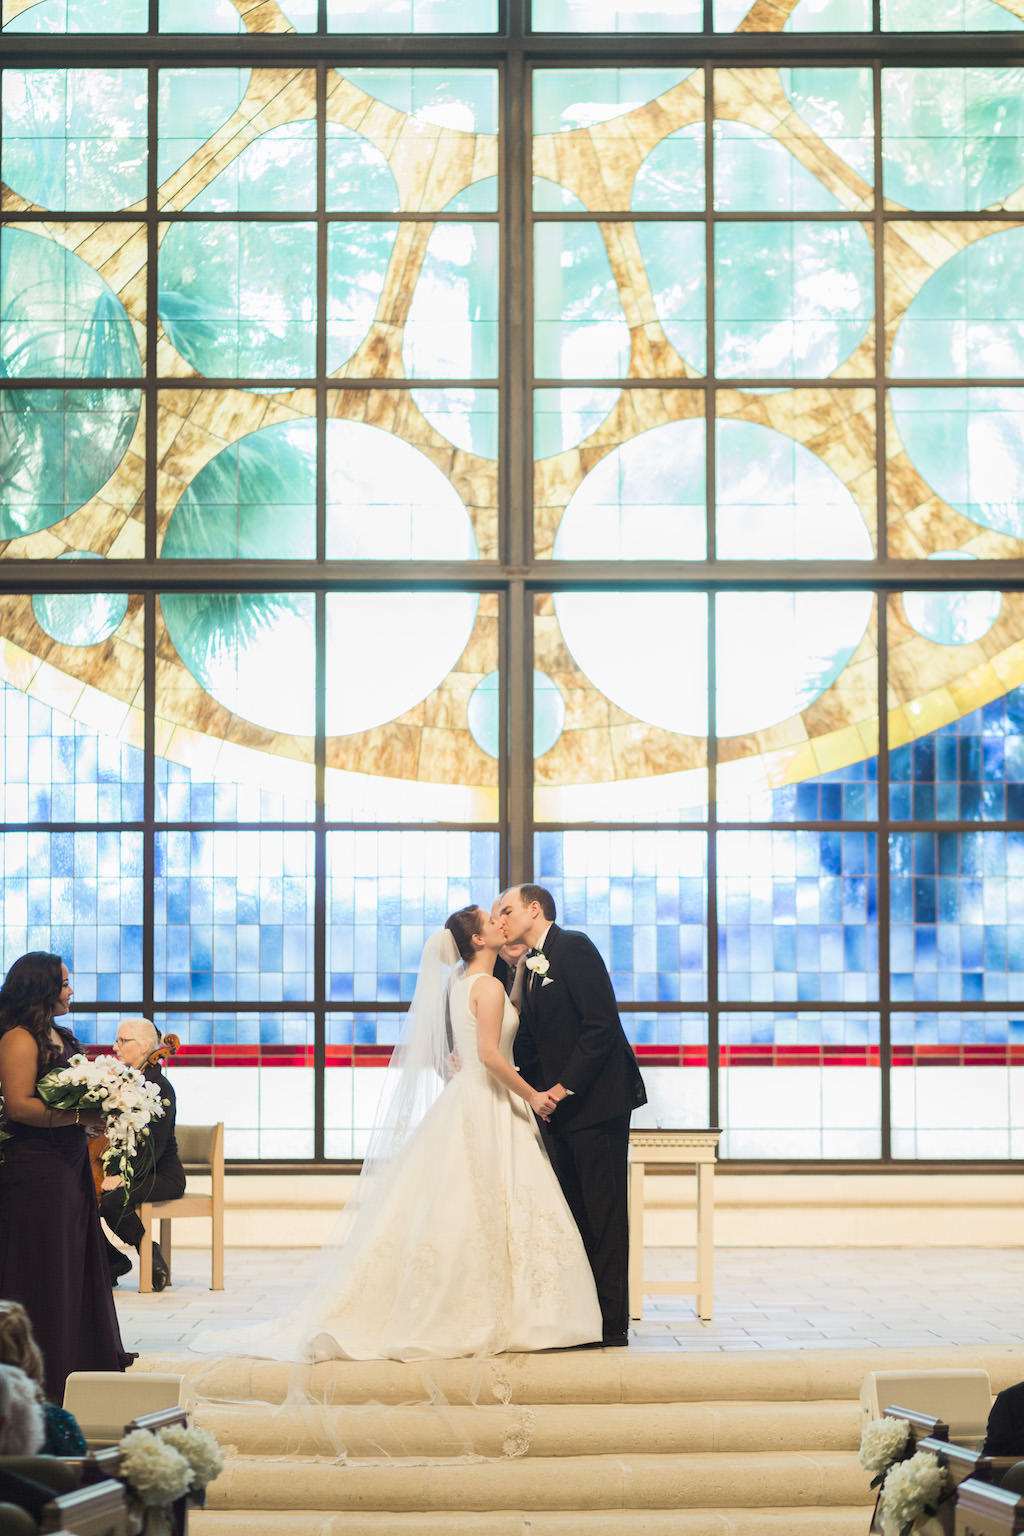 Bride and Groom First Kiss at Church Wedding Ceremony | First Baptist Church of St. Petersburg